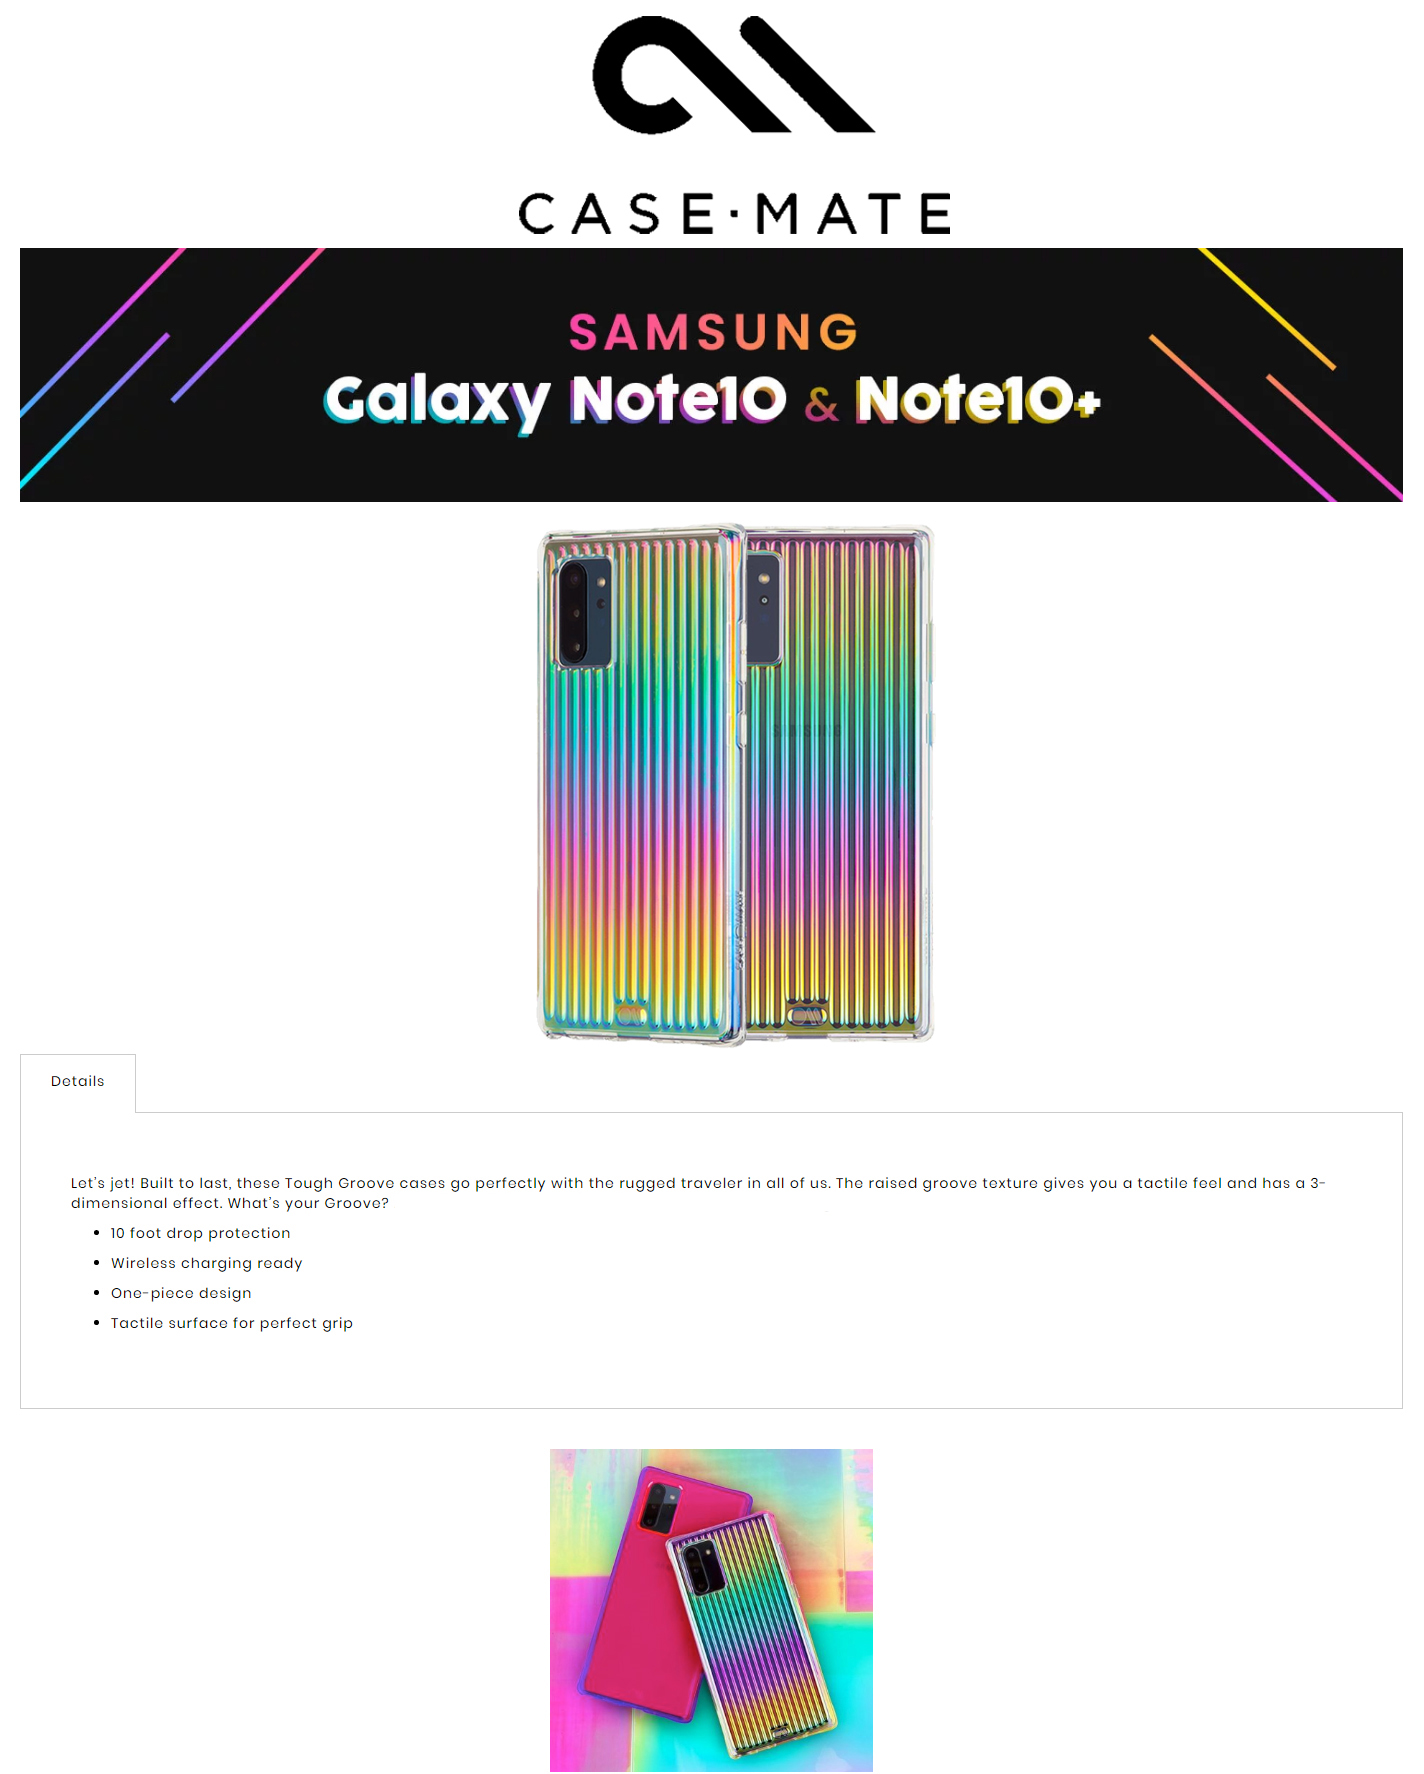 /Otterbox/846127186261/1-DES-fx-case-mate-tough-groove-samsung-galaxy-note-10-plus-iridiscent-846127186261-forexengineer-malaysia-authorised-retailer